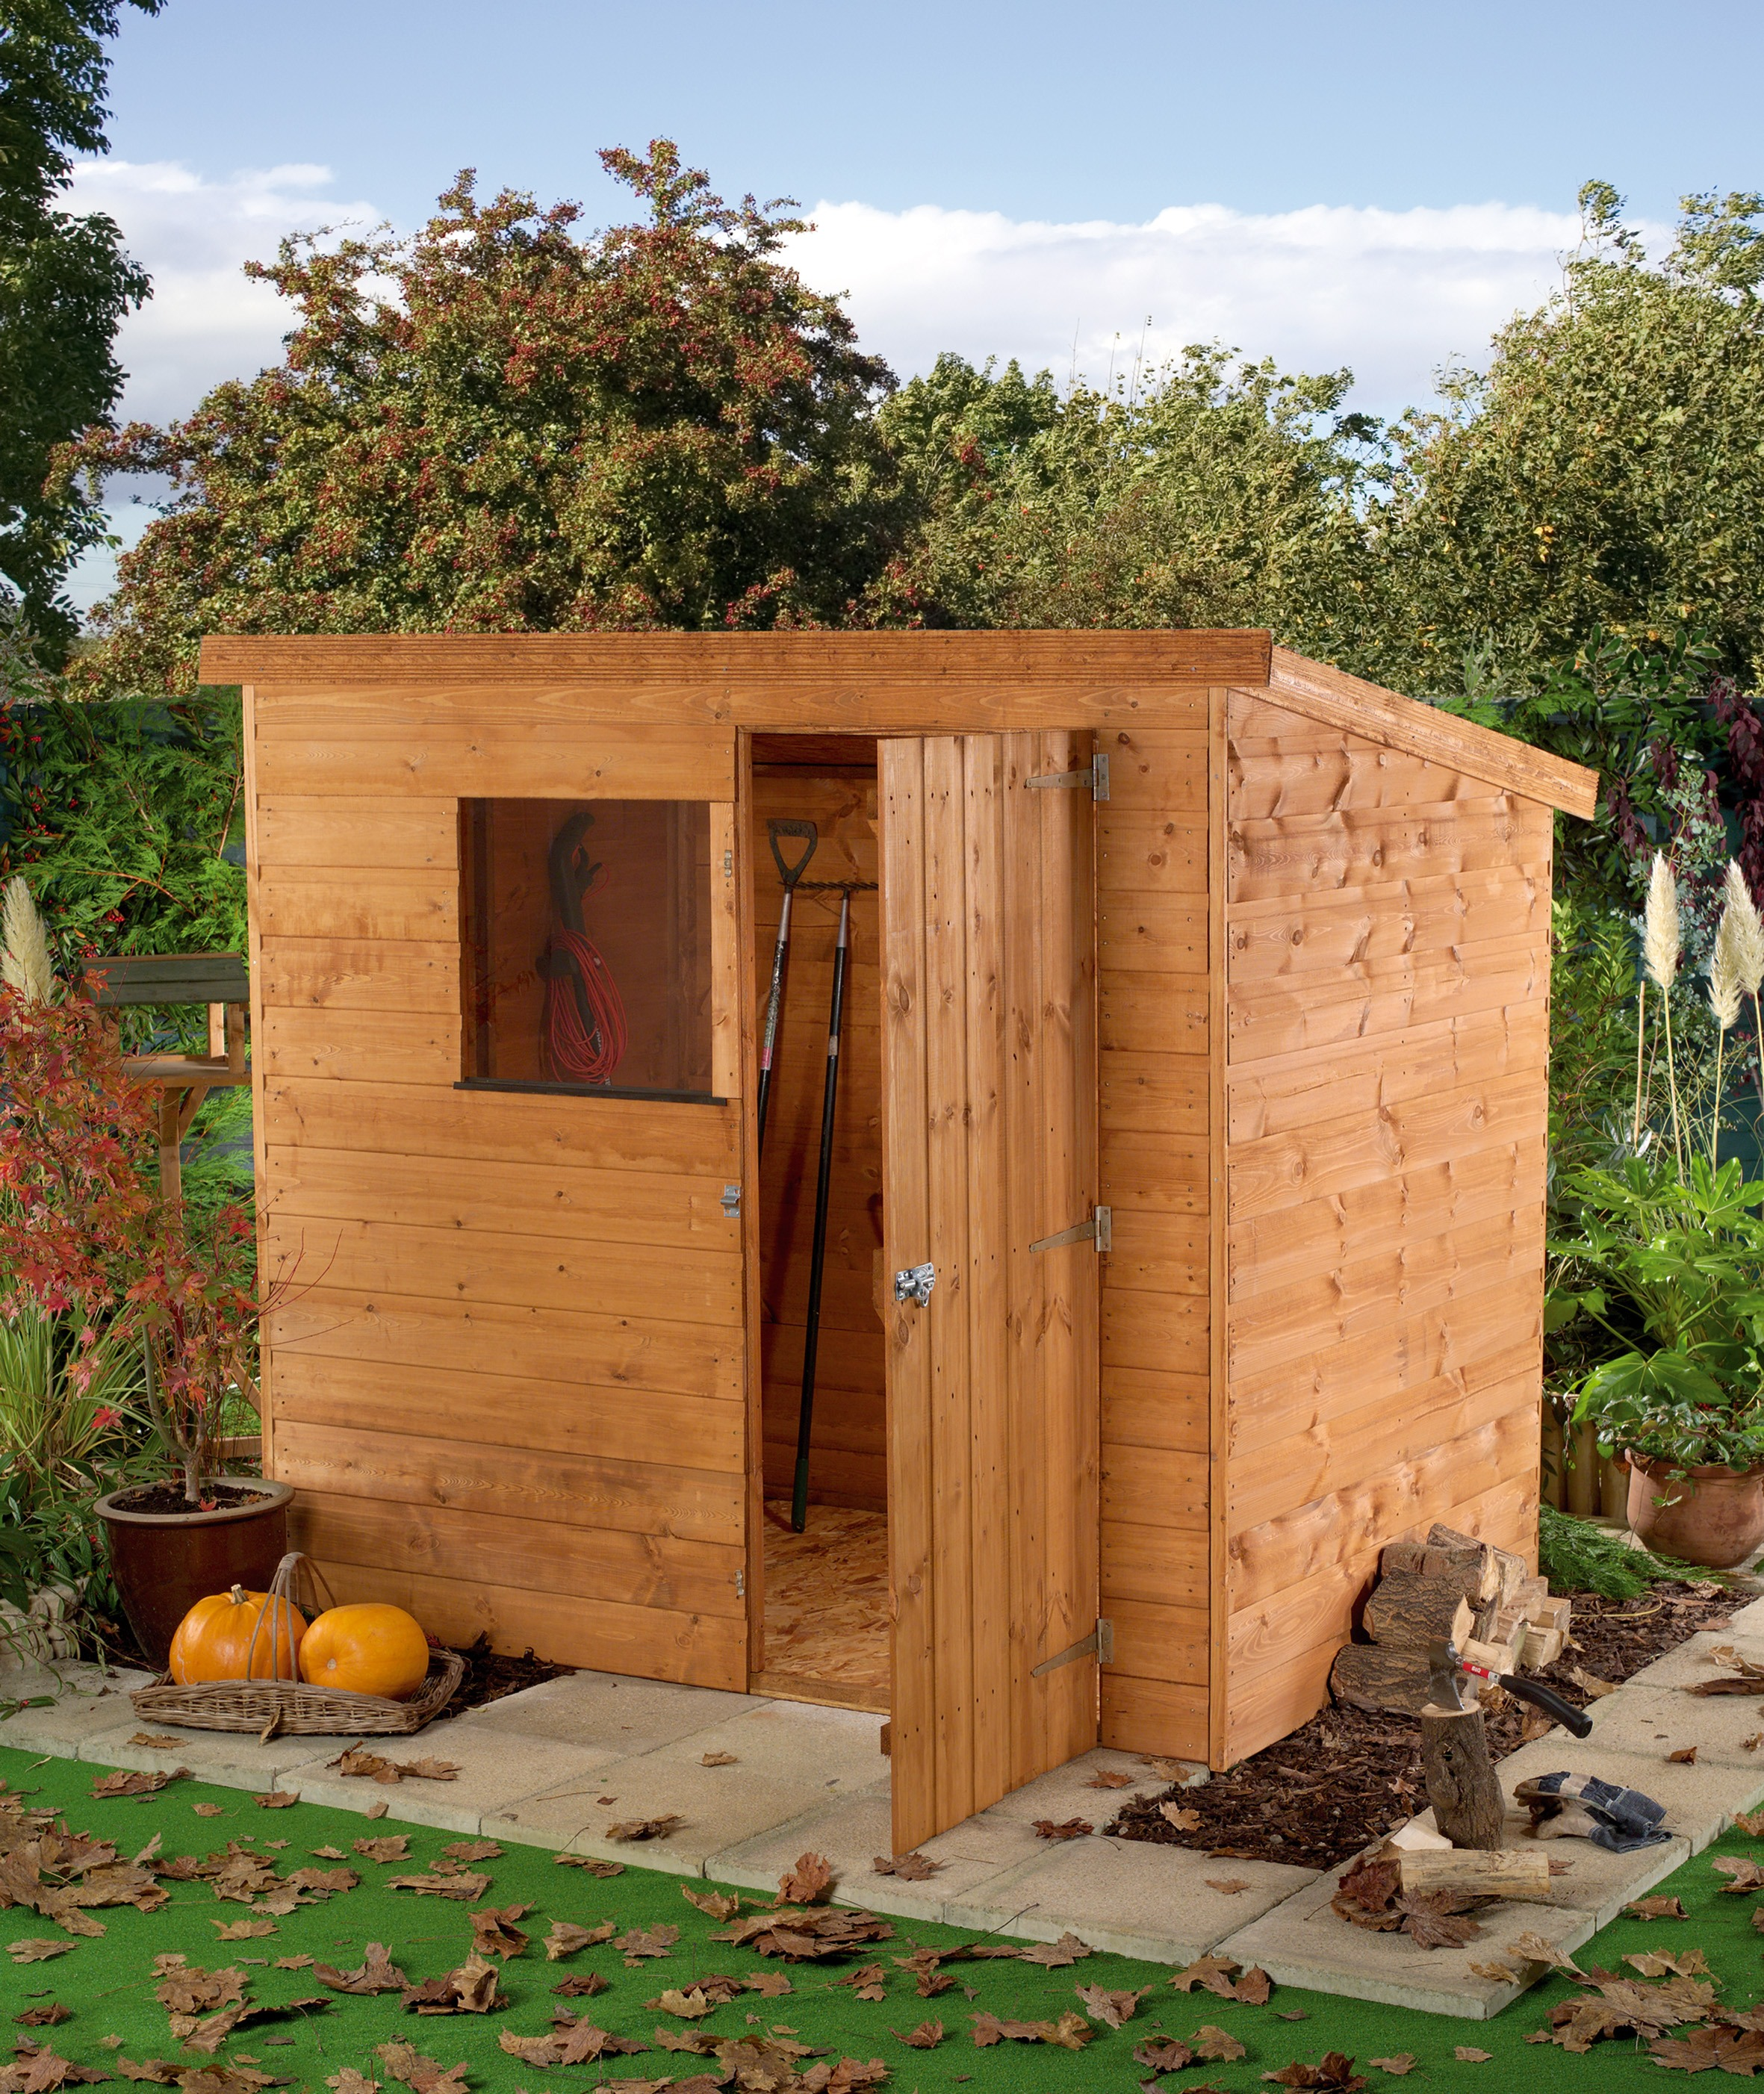 6 x 4 Garden Tongue and Groove Wooden Pent Shed - 1 Window - Single ...